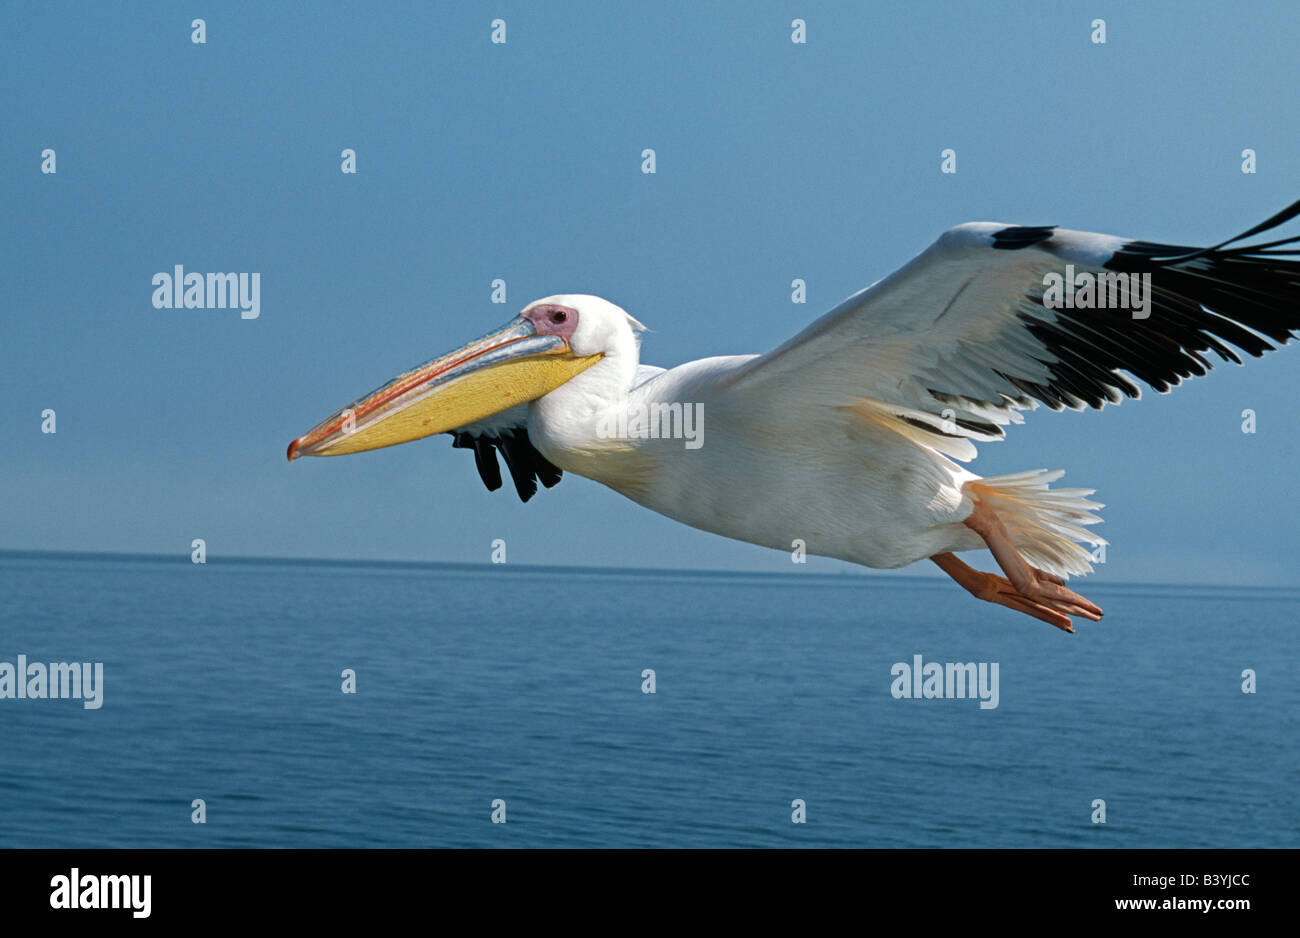 Namibia, Eastern White Pelicans (Pelecanus onocrotalus) in flight over Walvis Bay / Baii. - Stock Image